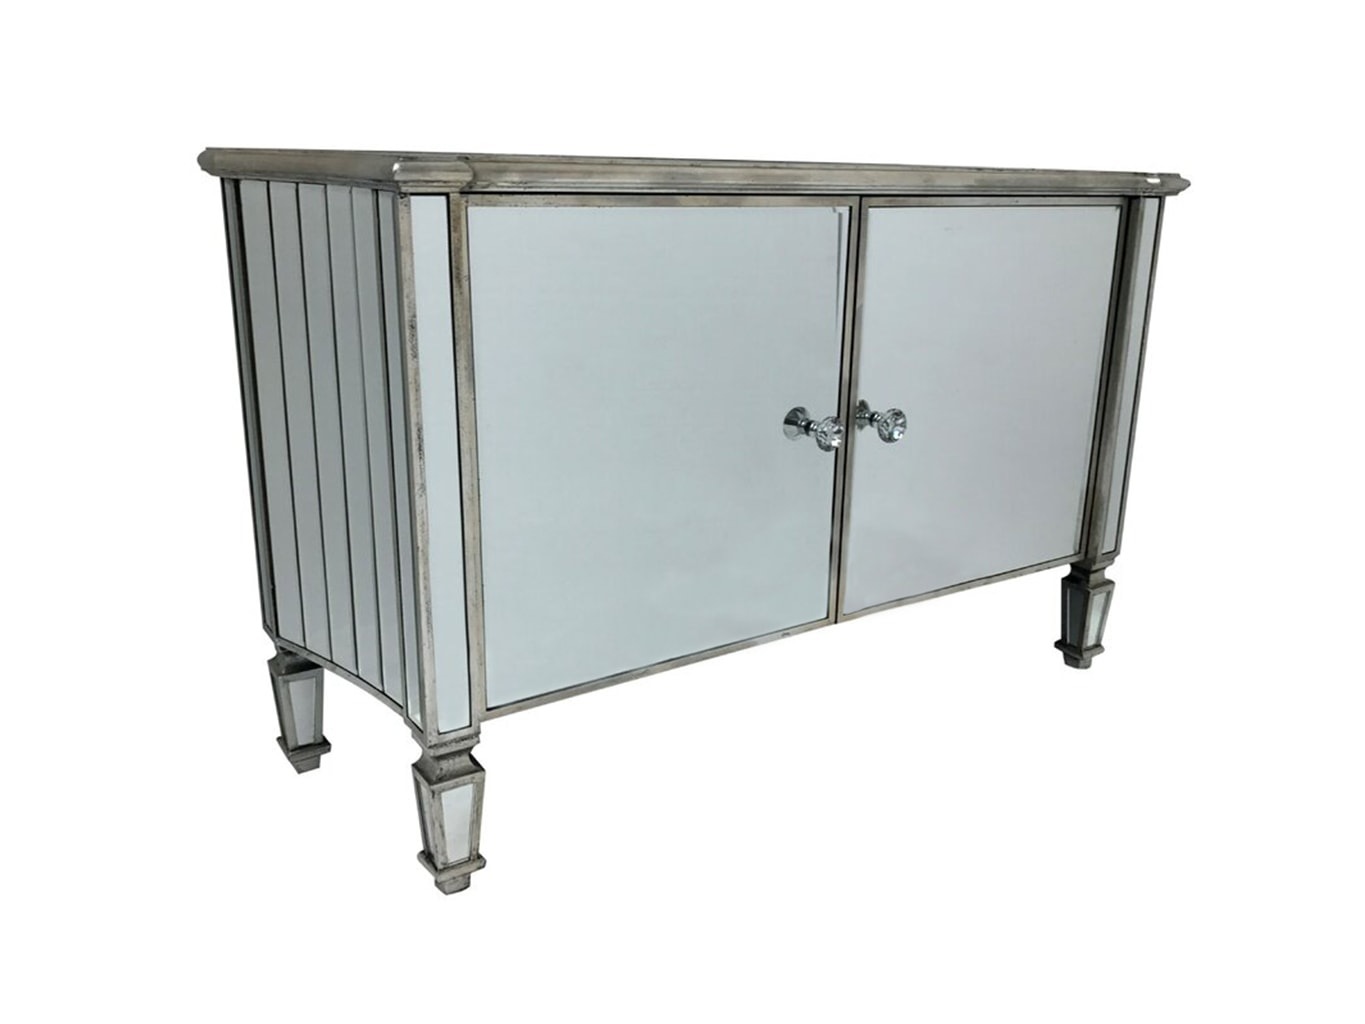 Marbella Mirrored Sideboard with 2 Cupboards and Diamante Handles